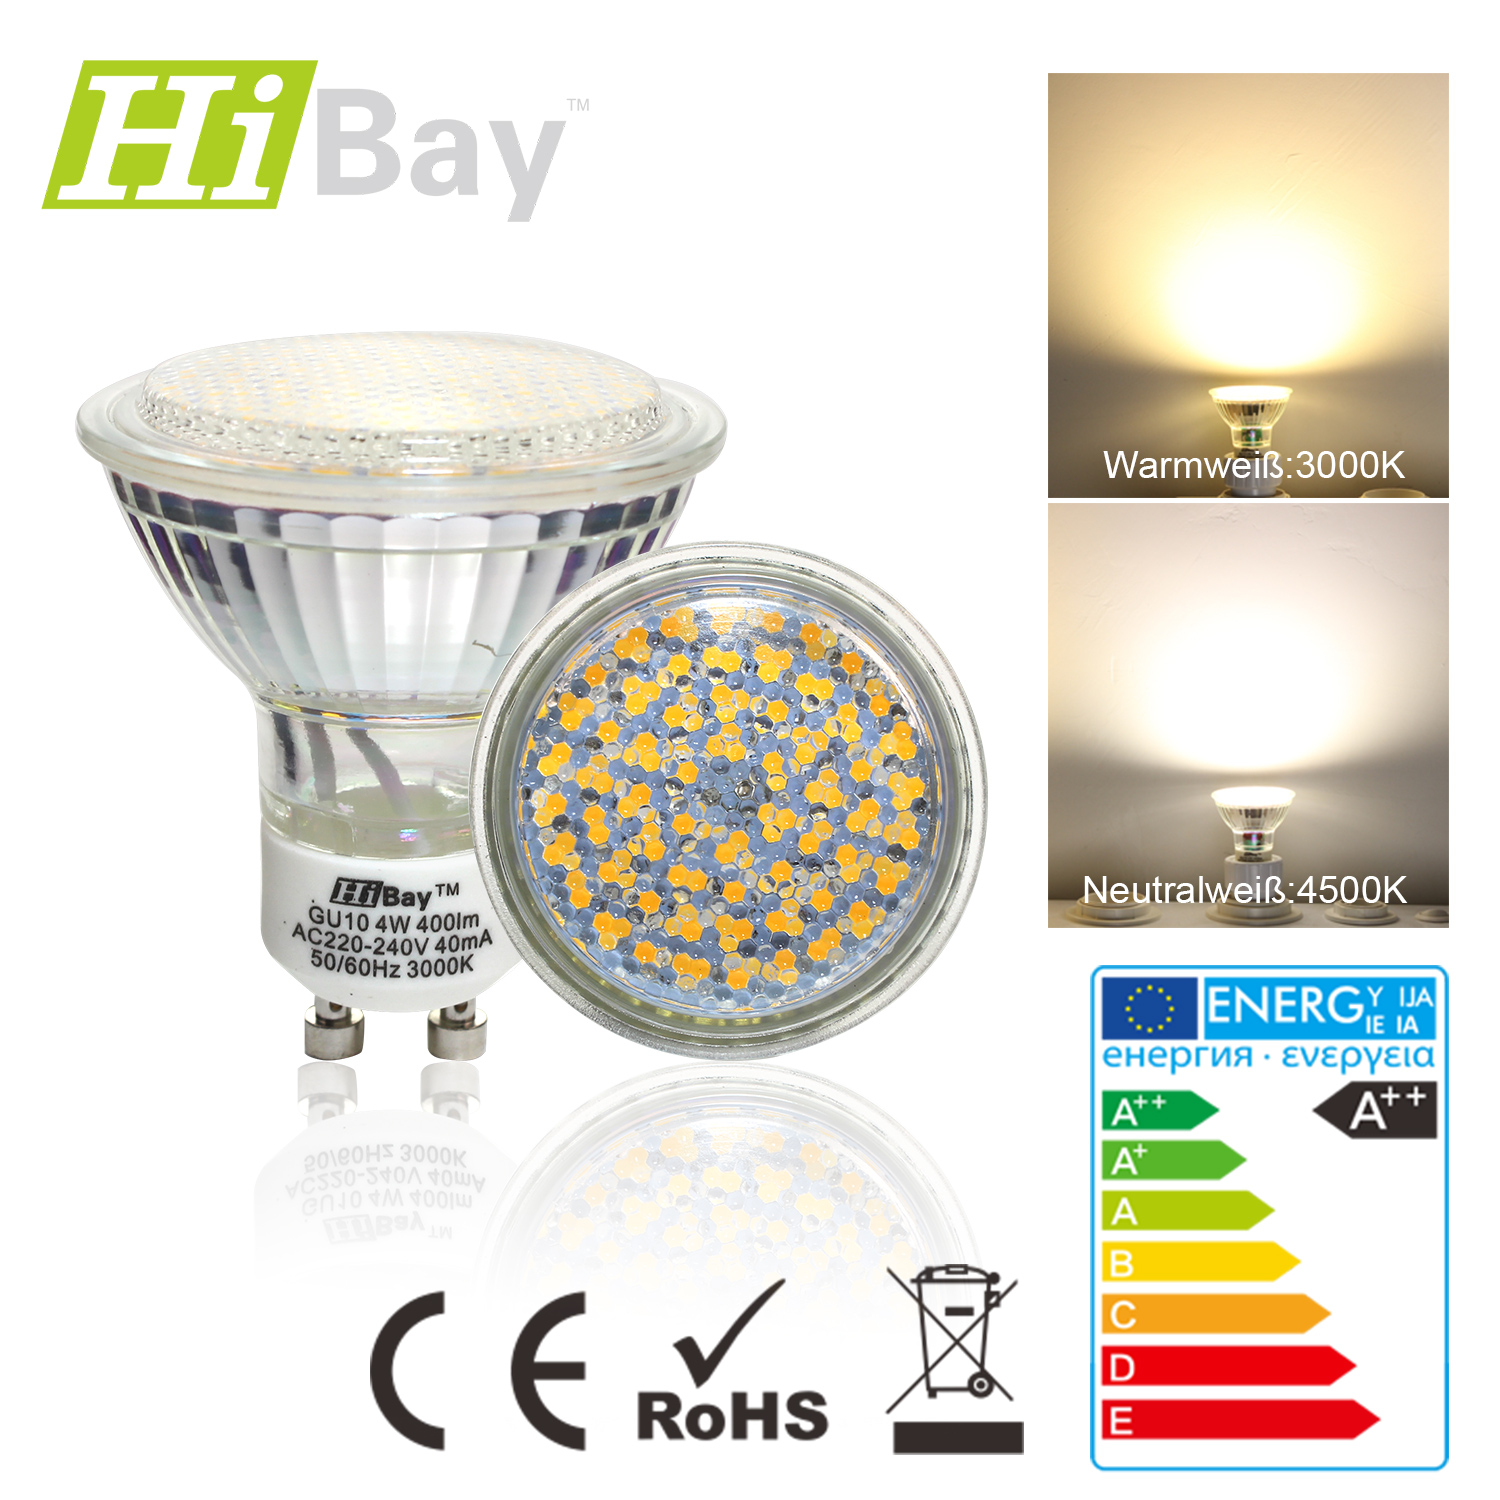 1er 4er 10er 4w gu10 60smd led licht strahler 35w licht strahler licht spot ebay. Black Bedroom Furniture Sets. Home Design Ideas